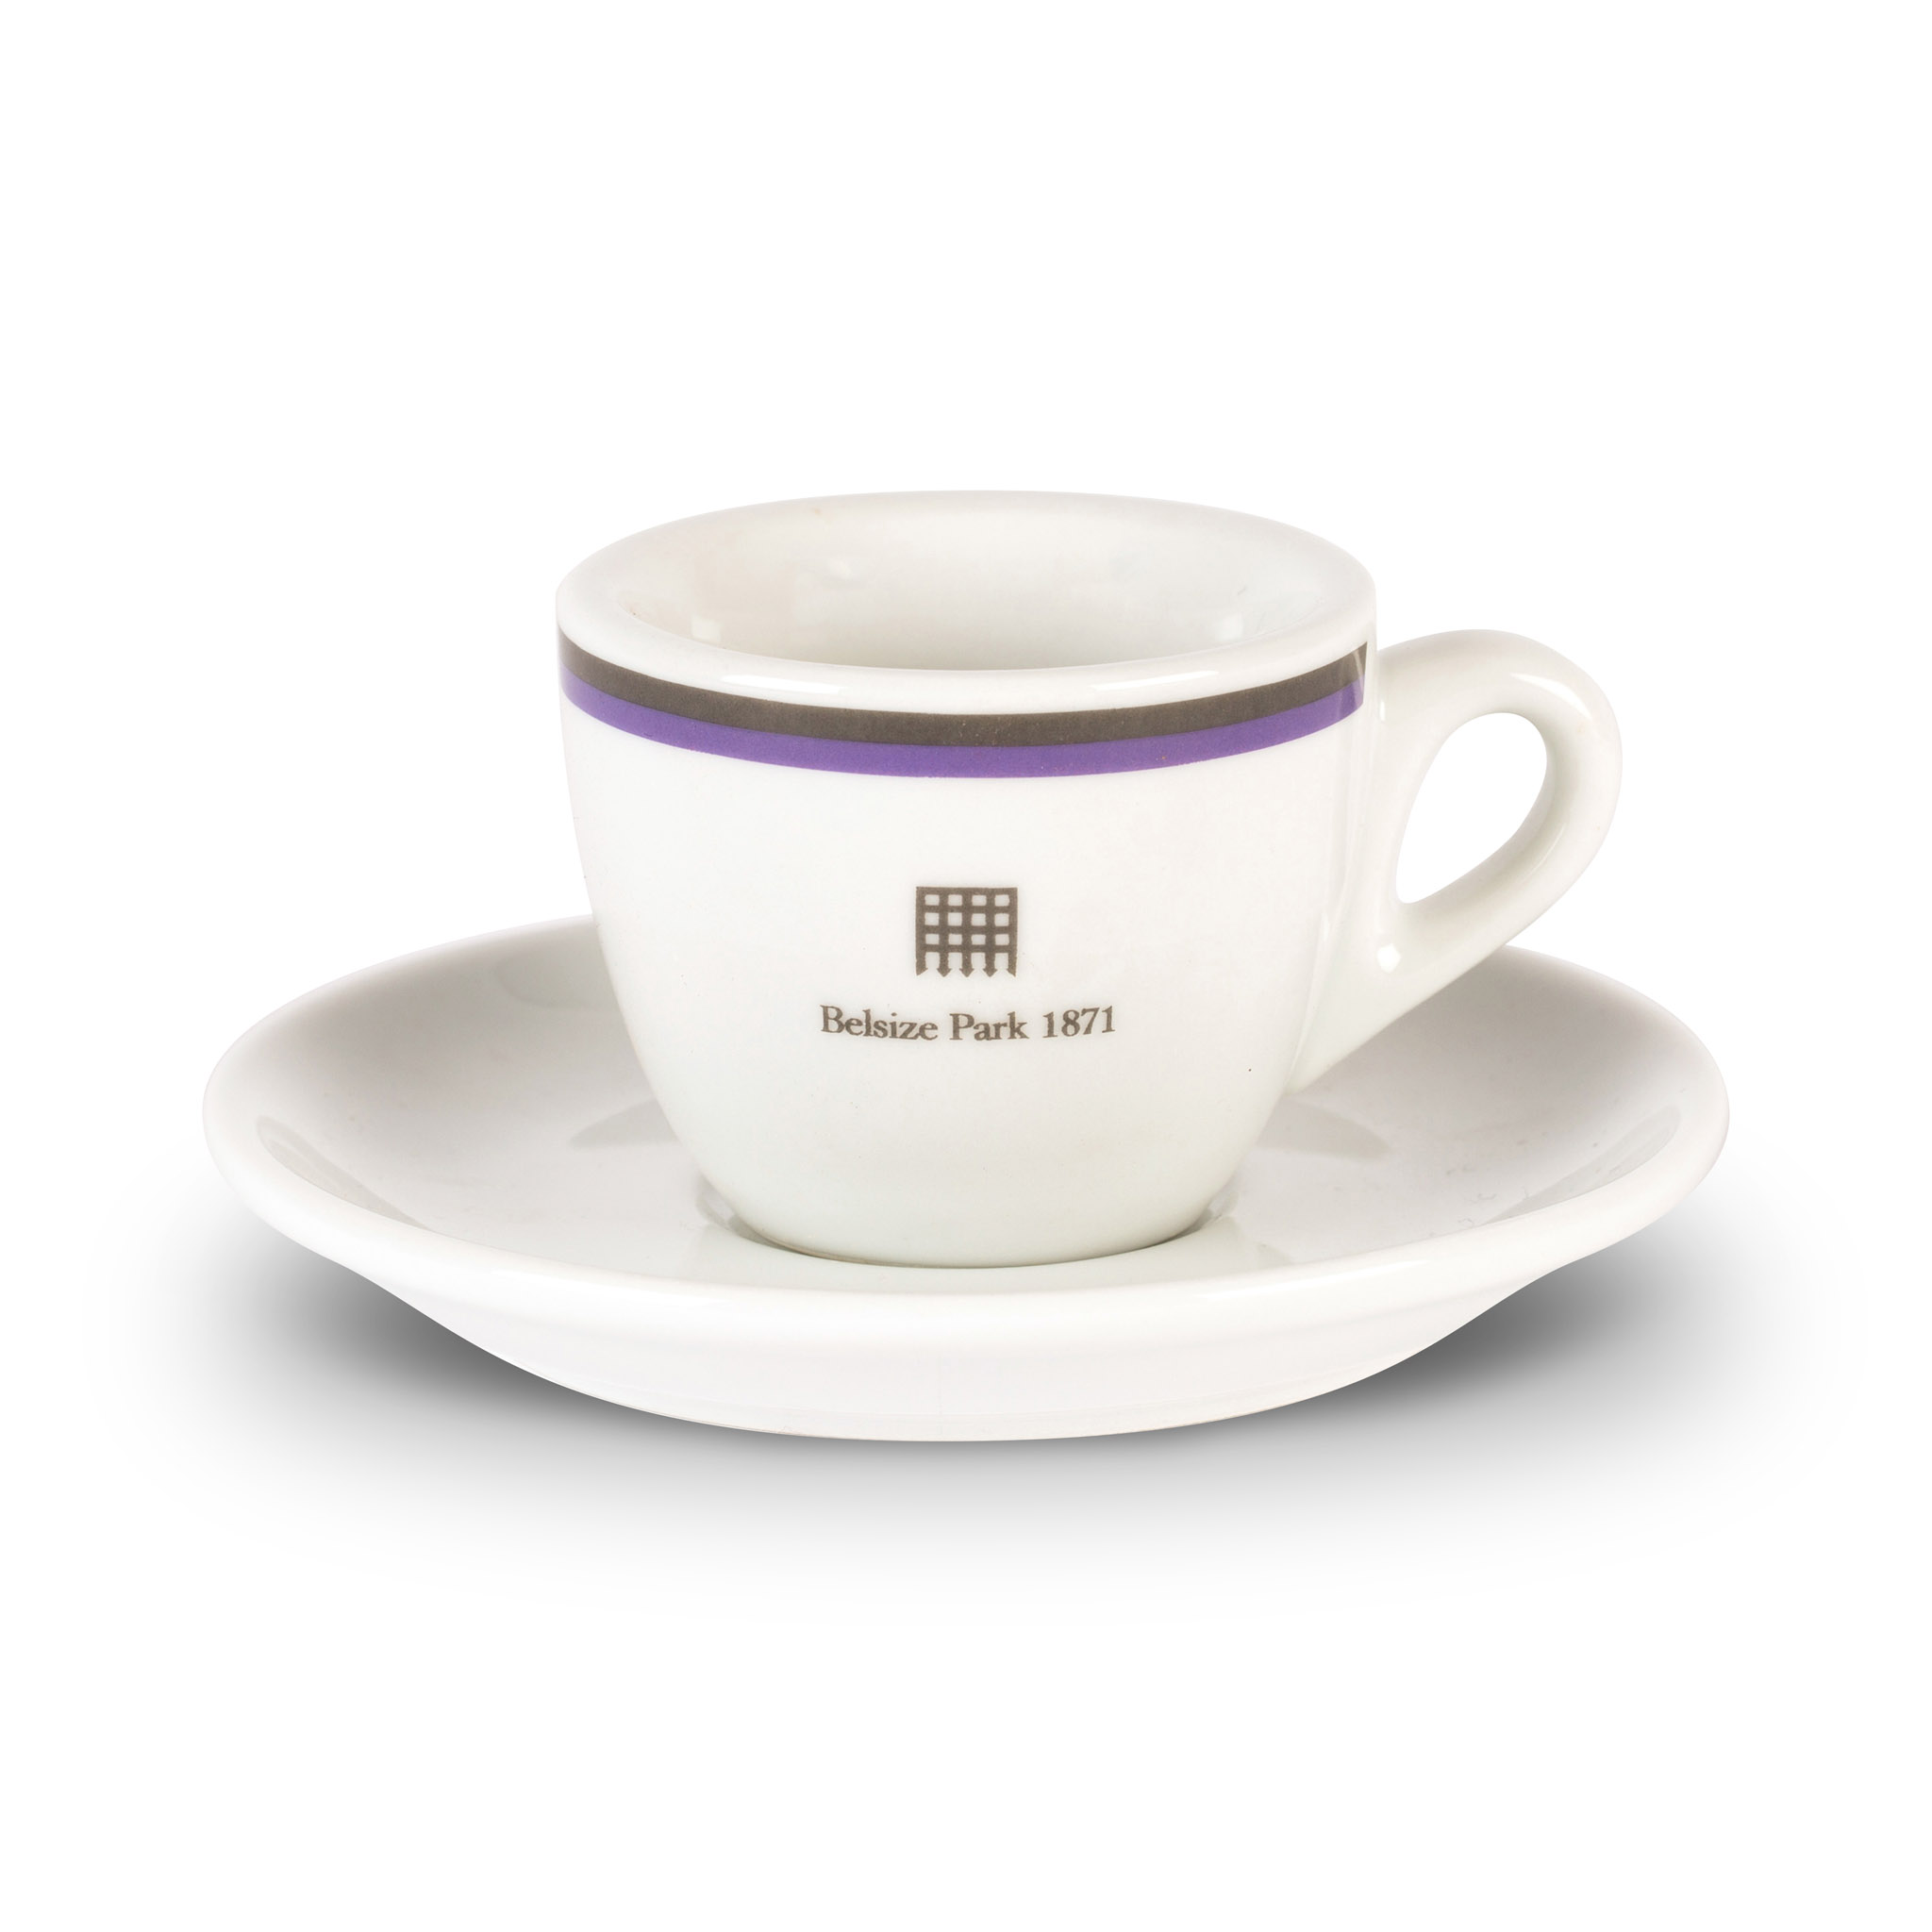 Belsize Park espresso cup and saucer